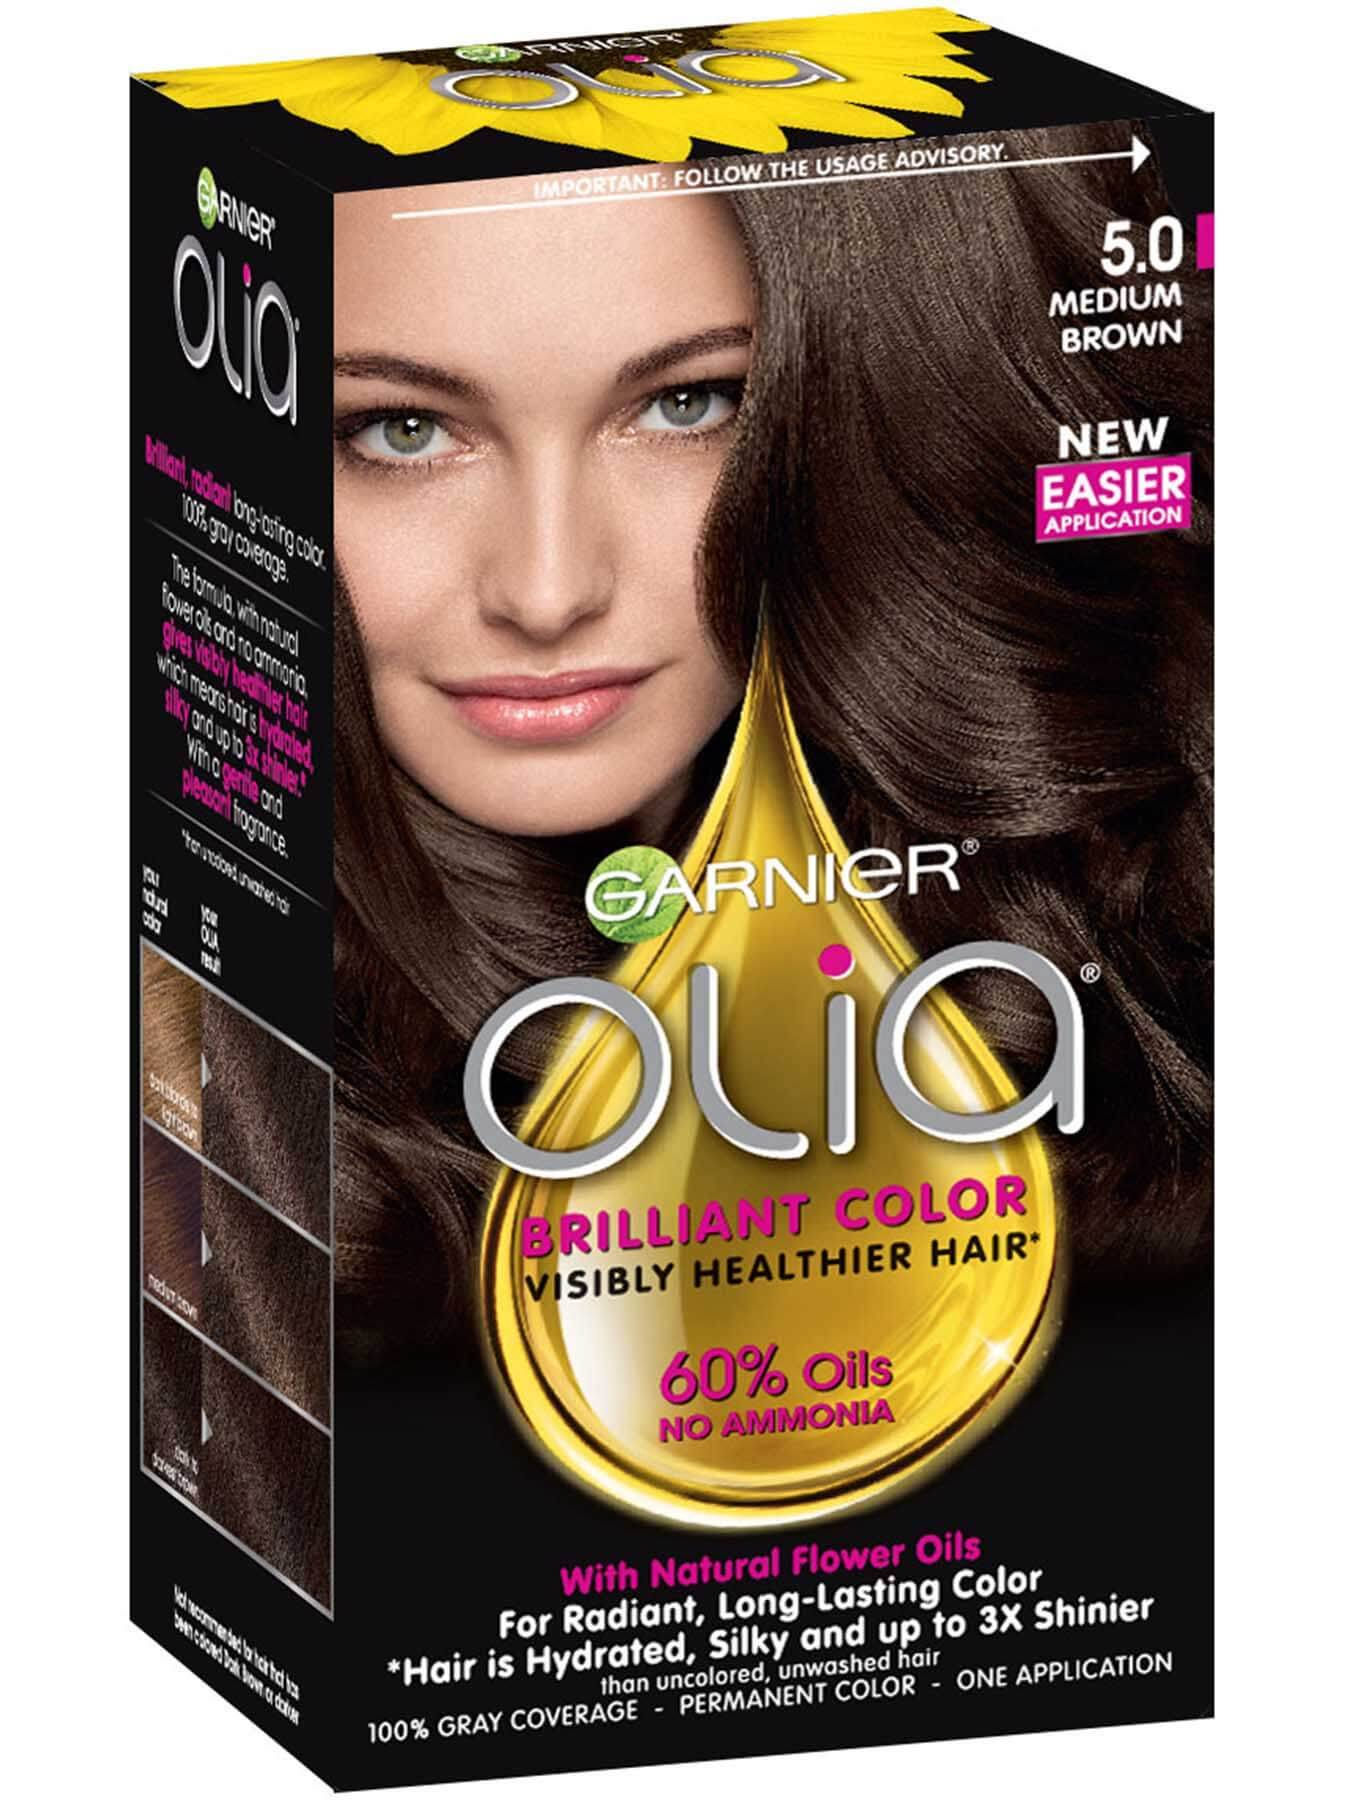 Olia Ammonia Free Permanent Hair Color Medium Brown Garnier